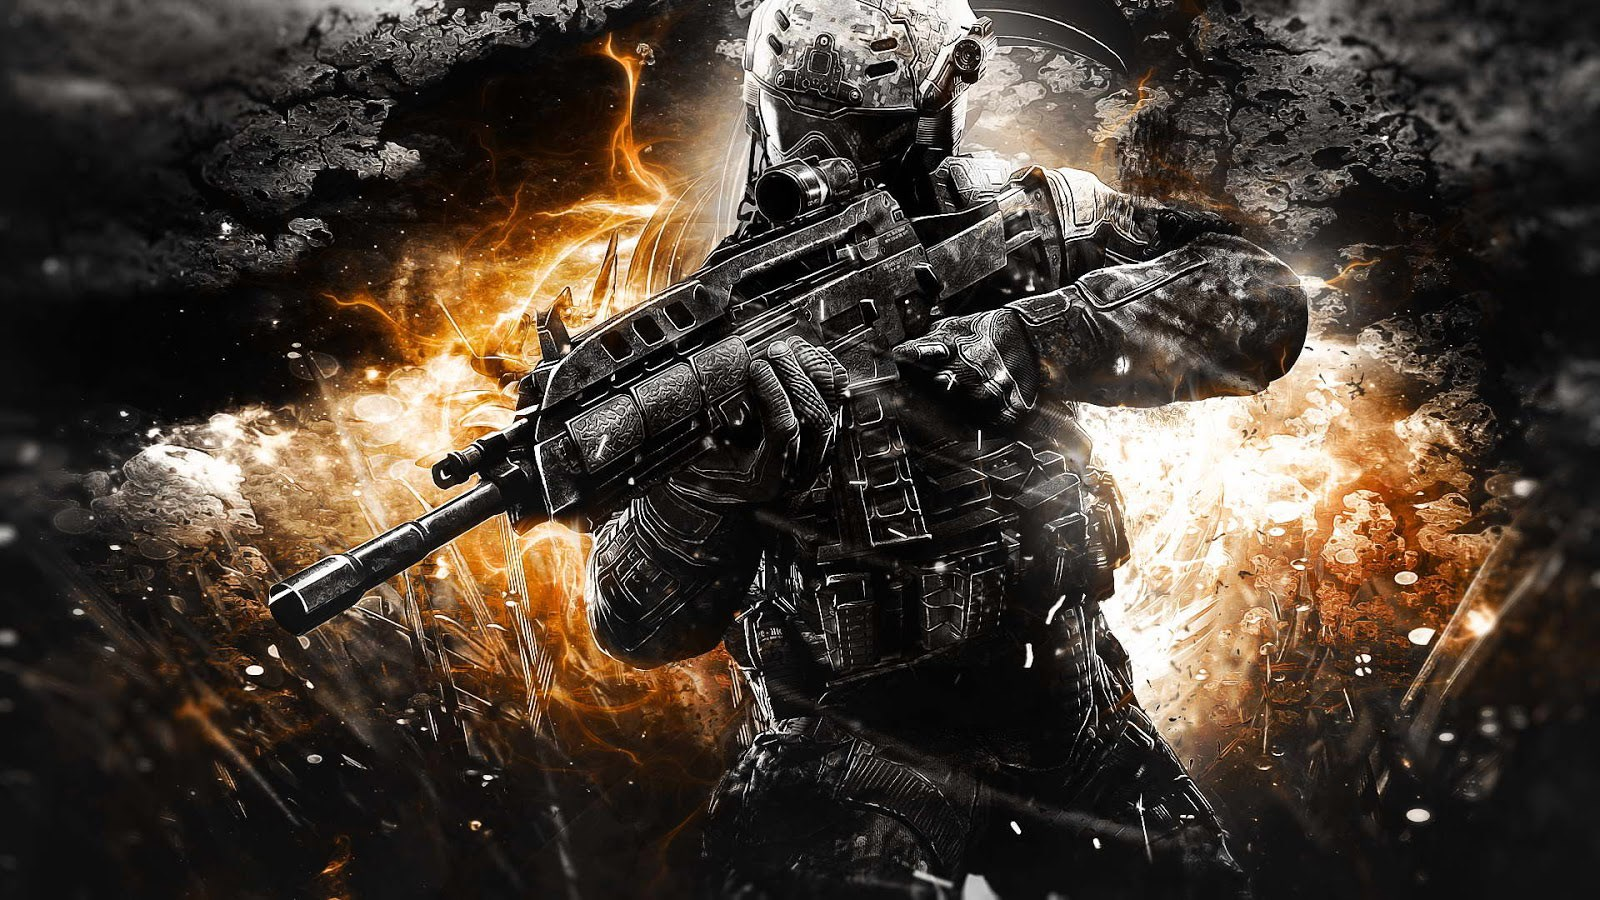 call-of-duty-black-ops-wallpaper-wp3403648